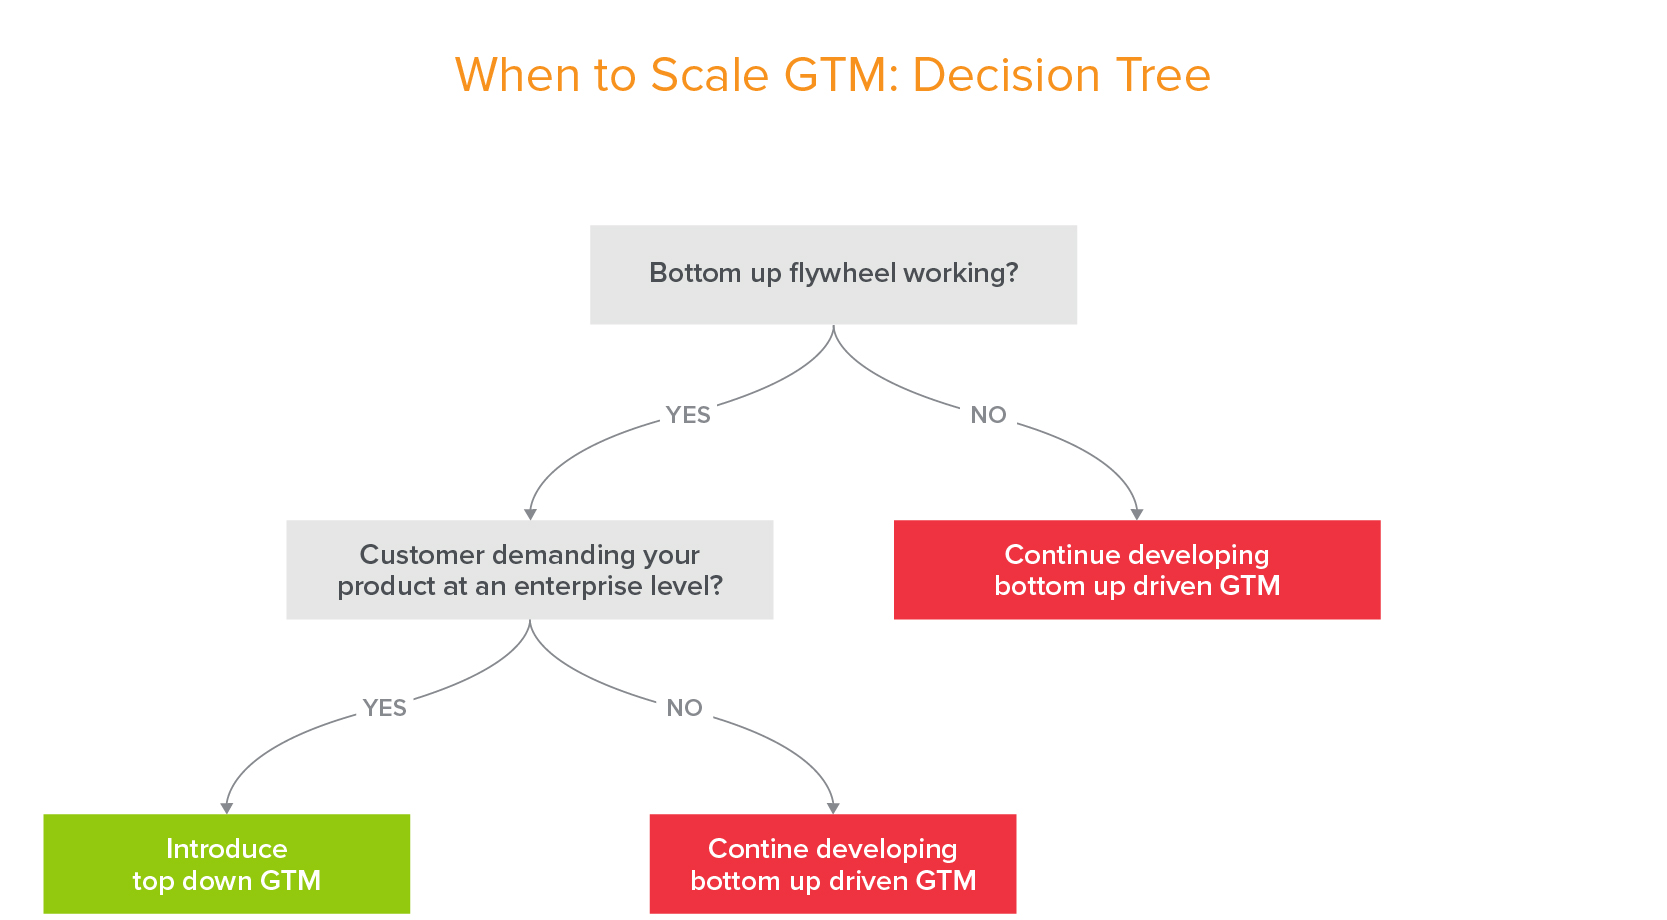 Decision tree for adding in top down sales